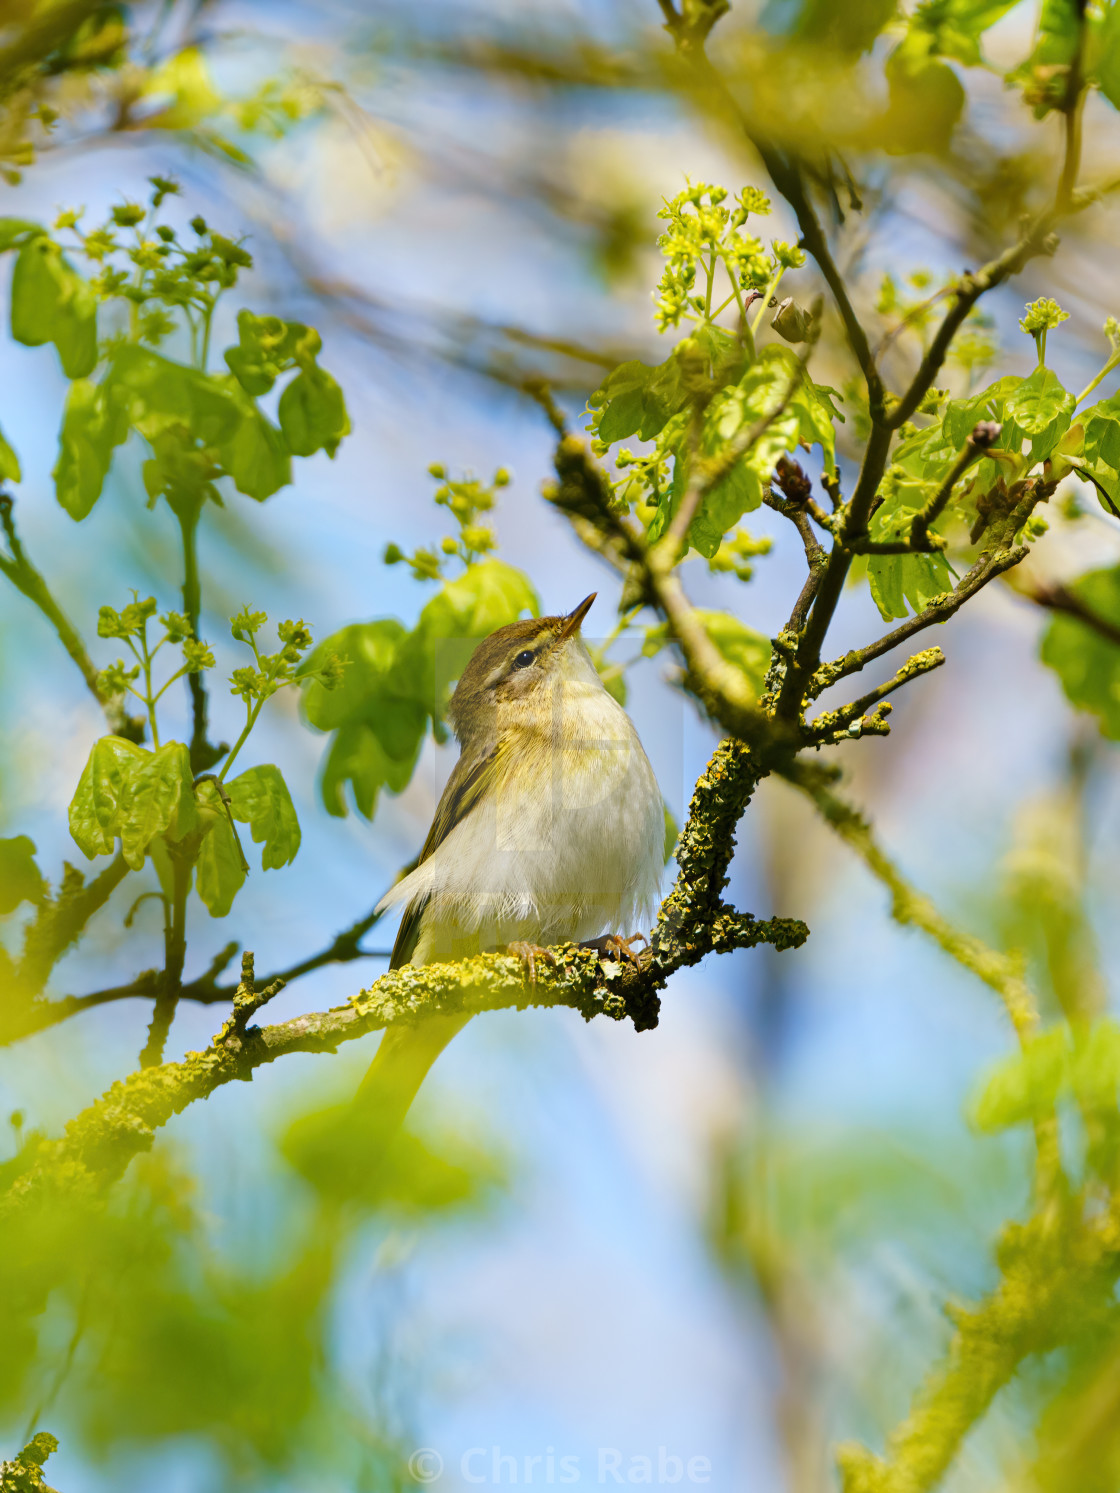 """Willow Warbler (Phylloscopus trochilus) portrait looking up, taken in UK"" stock image"